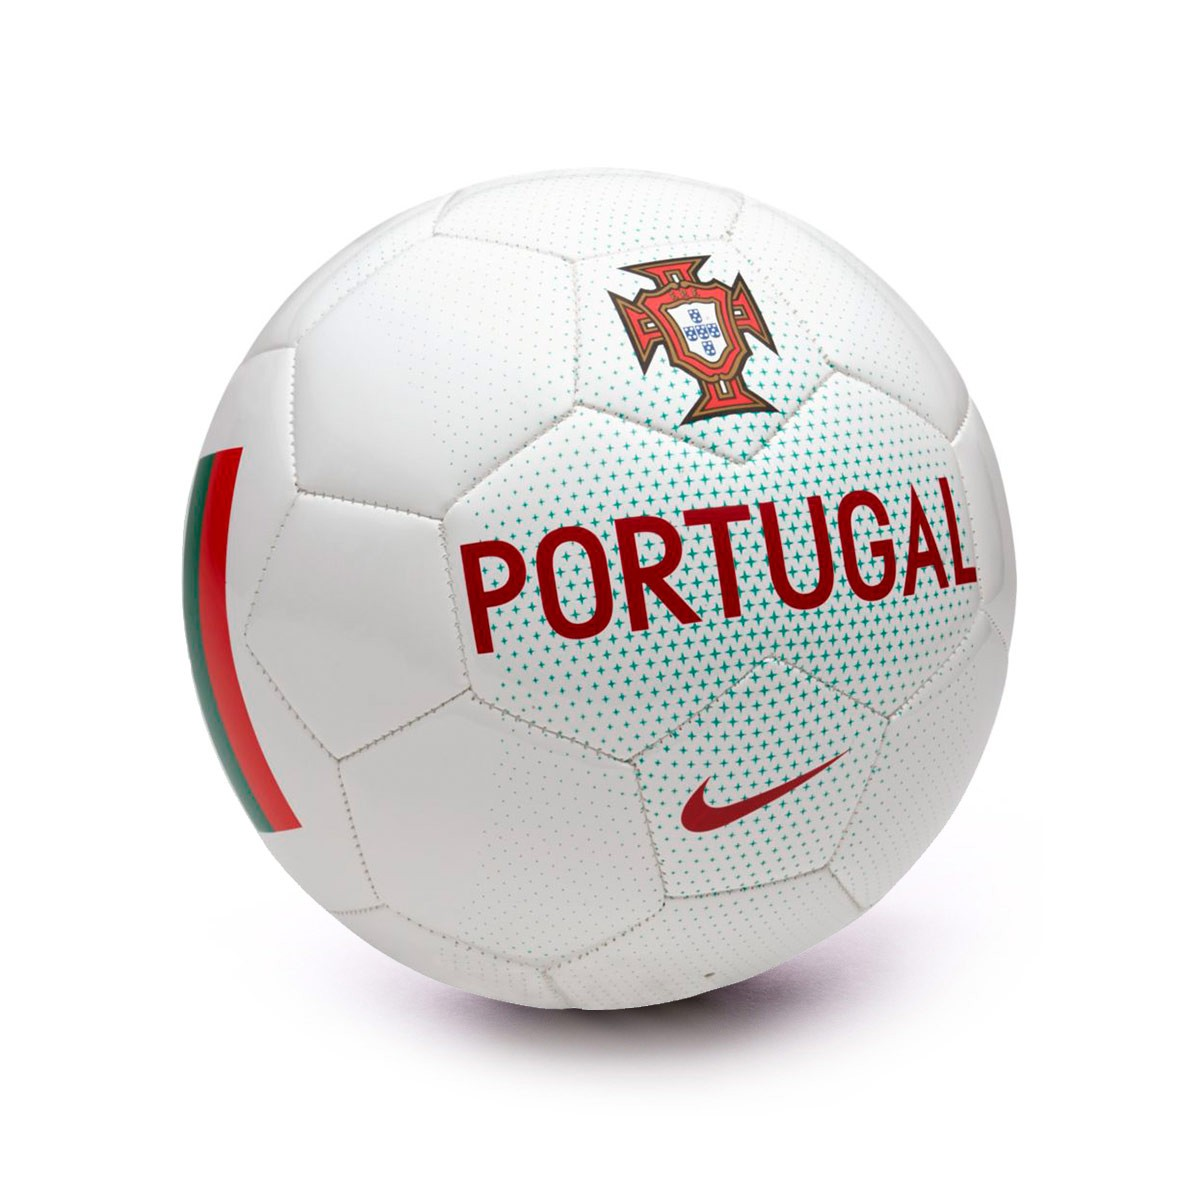 Balón Nike Portugal Supporters White-Kinetic green-Gym red ... cc985528740c3